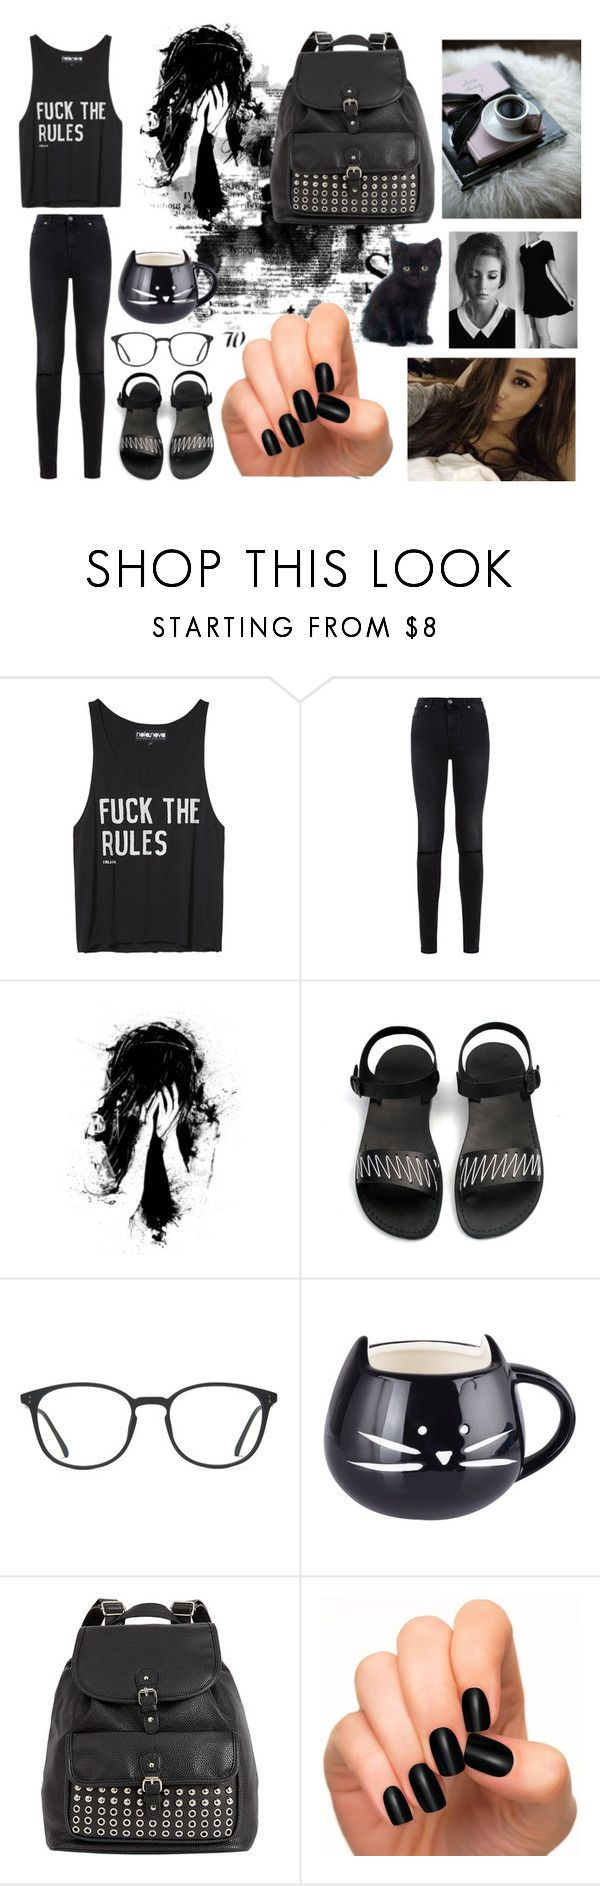 ""\ dark outfit #18 \"" by huiqic ❤ liked on Polyvore featuring Off-White, 7 For All Mankind, GlassesUSA, black and blackoutfit600|1886|?|510c866f3c25d80190d5875a40c2e7cc|False|UNLIKELY|0.35638681054115295